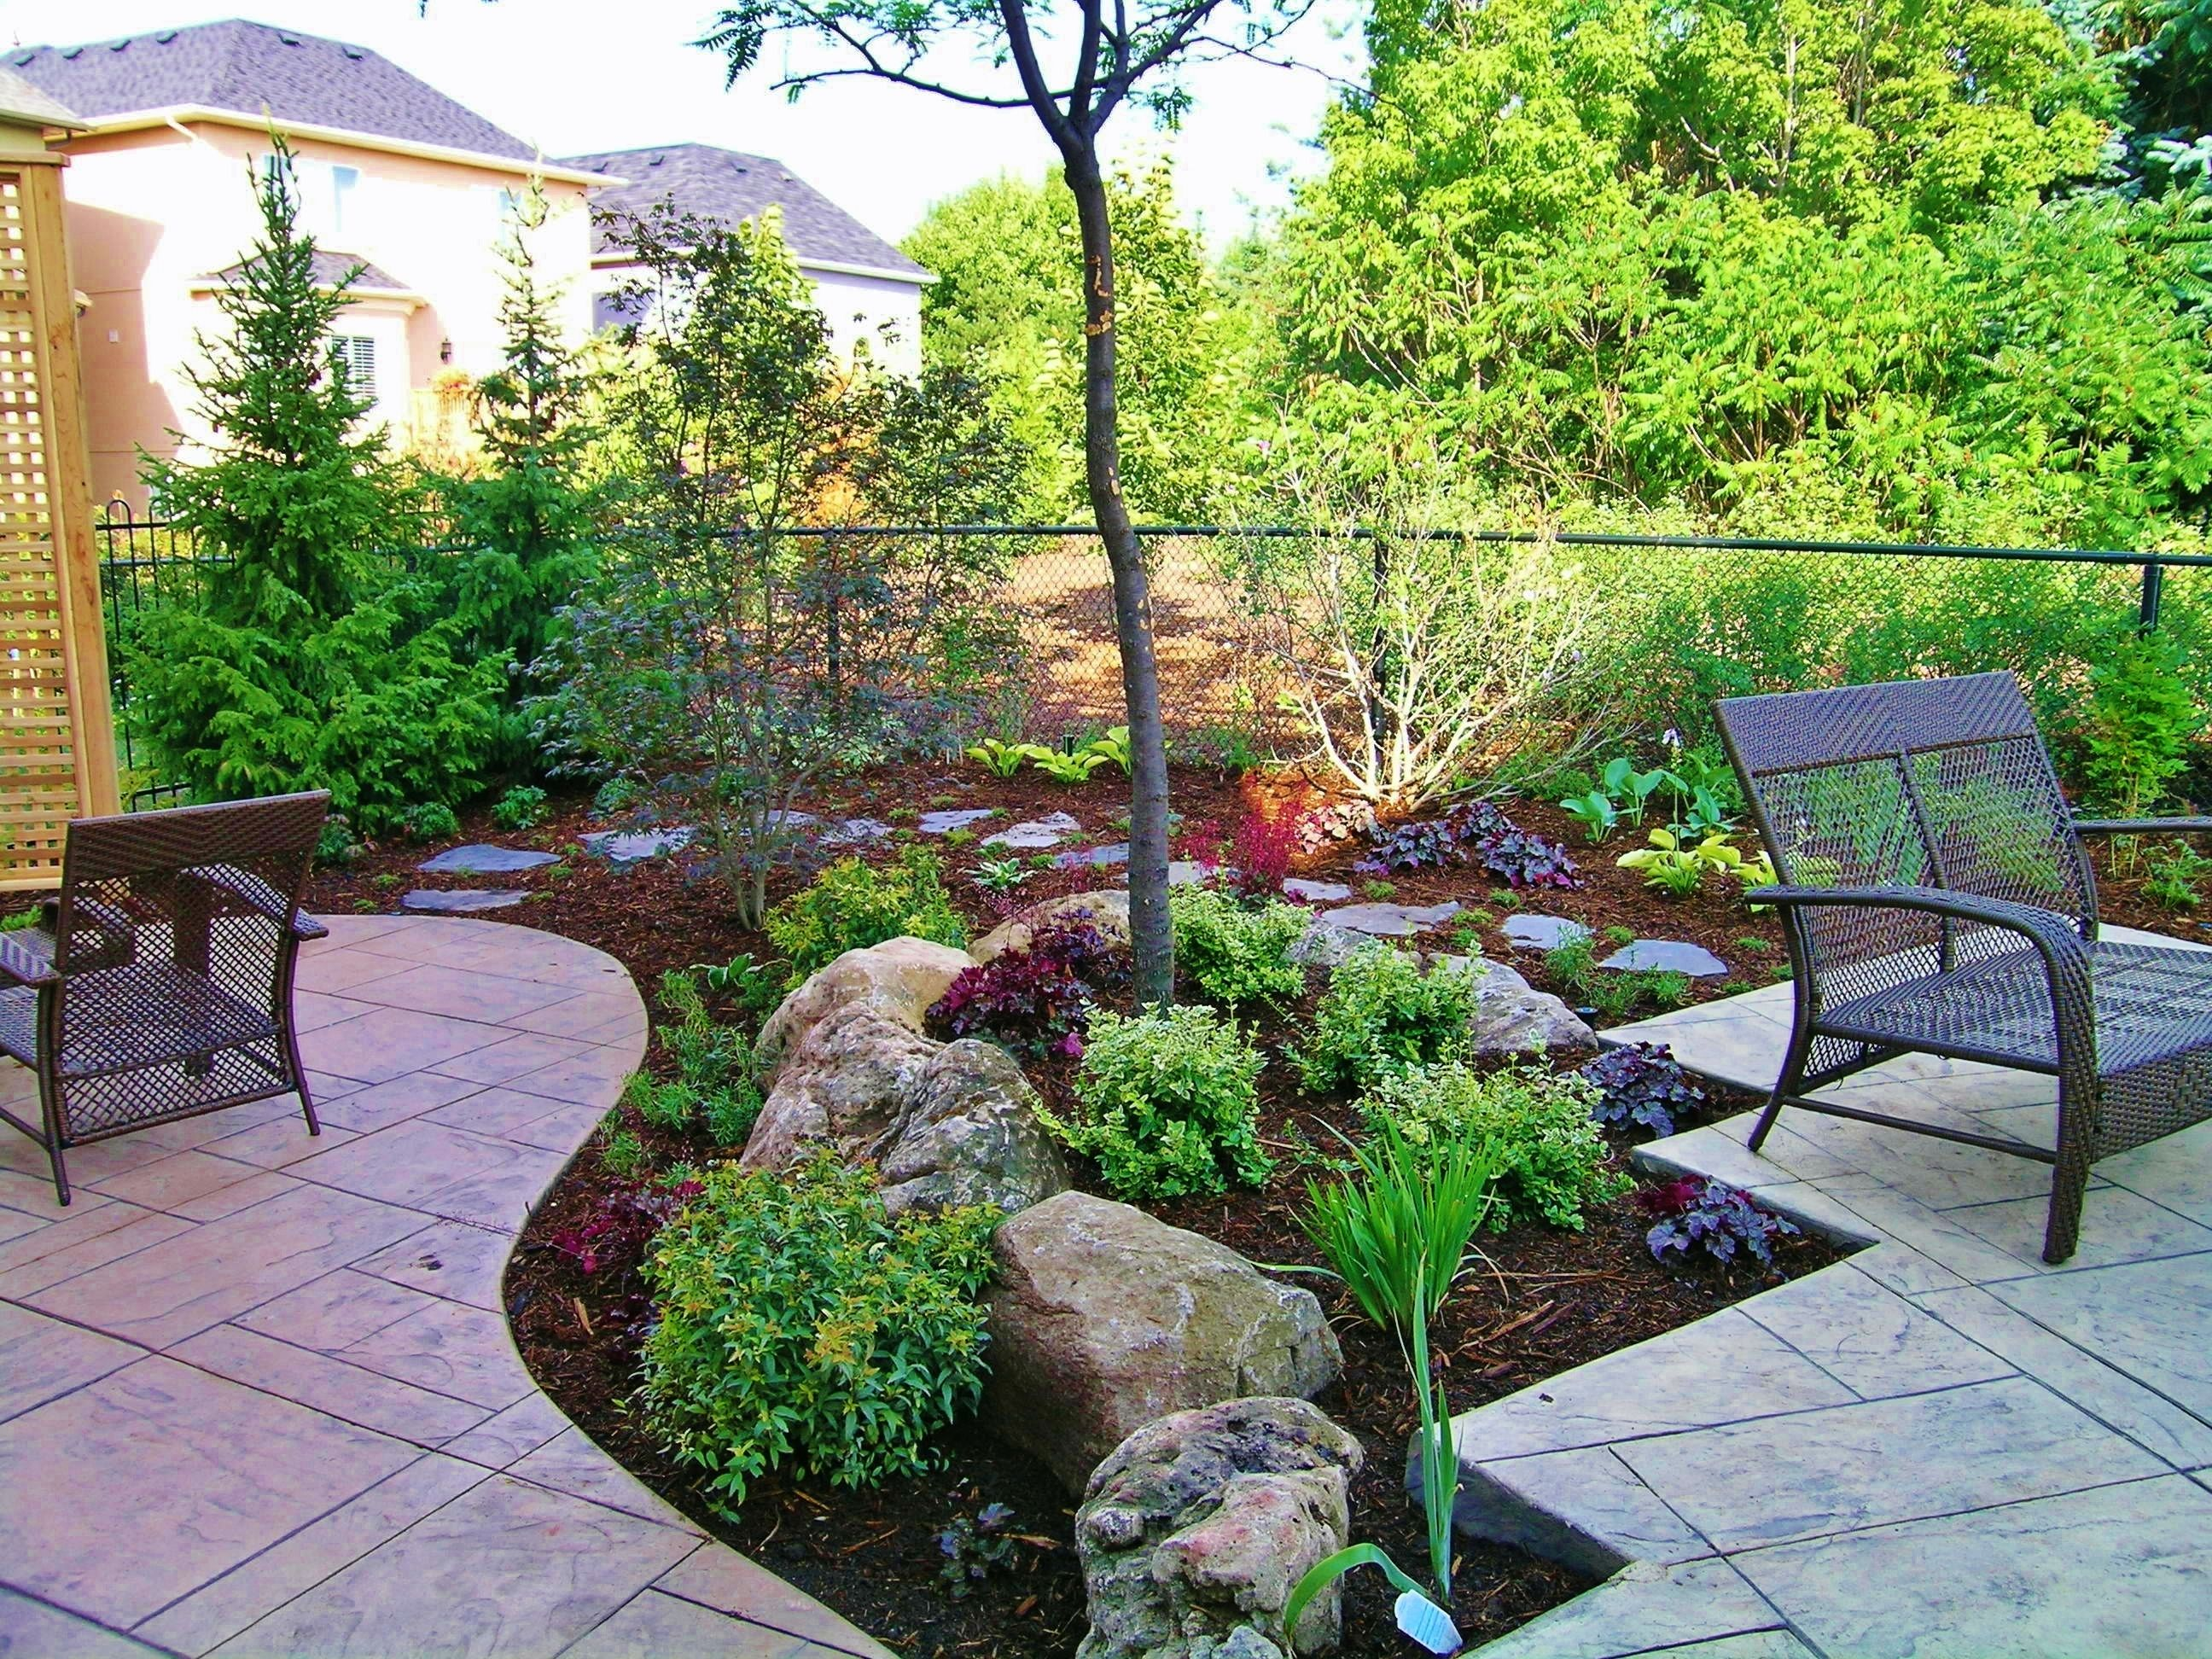 backyard without grass | outdoors | backyard landscaping, backyard